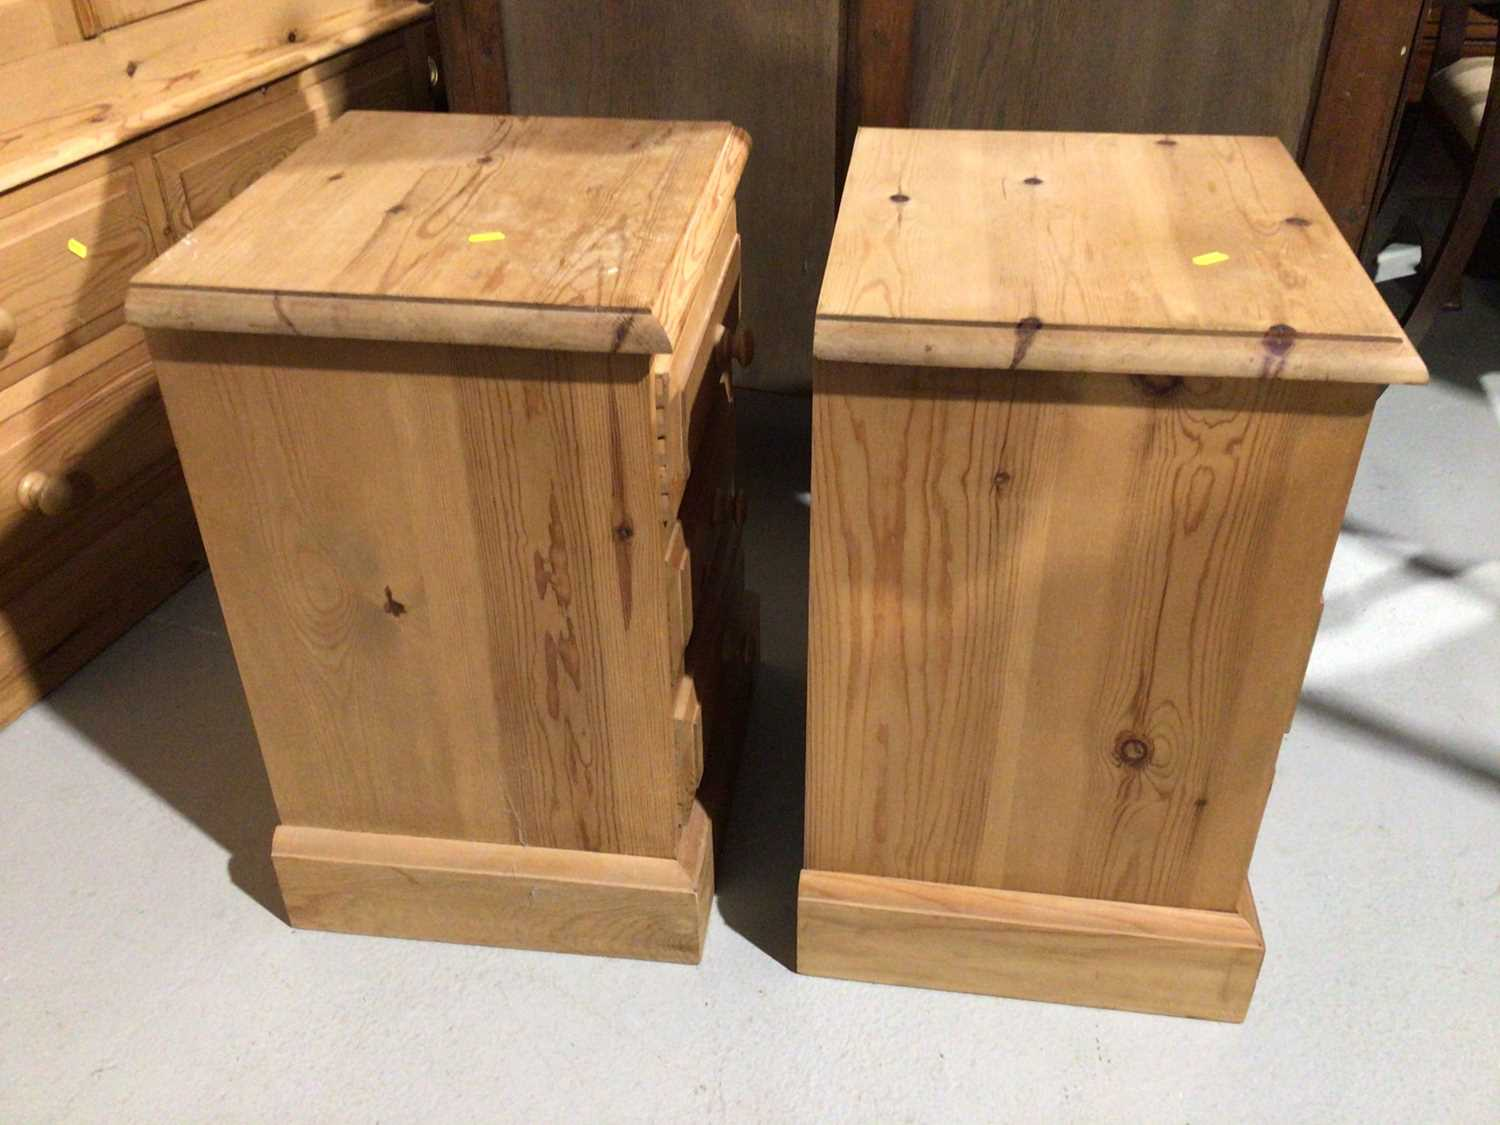 Pair of pine three drawer bedside chests and a pine dressing table mirror (3) - Image 8 of 8